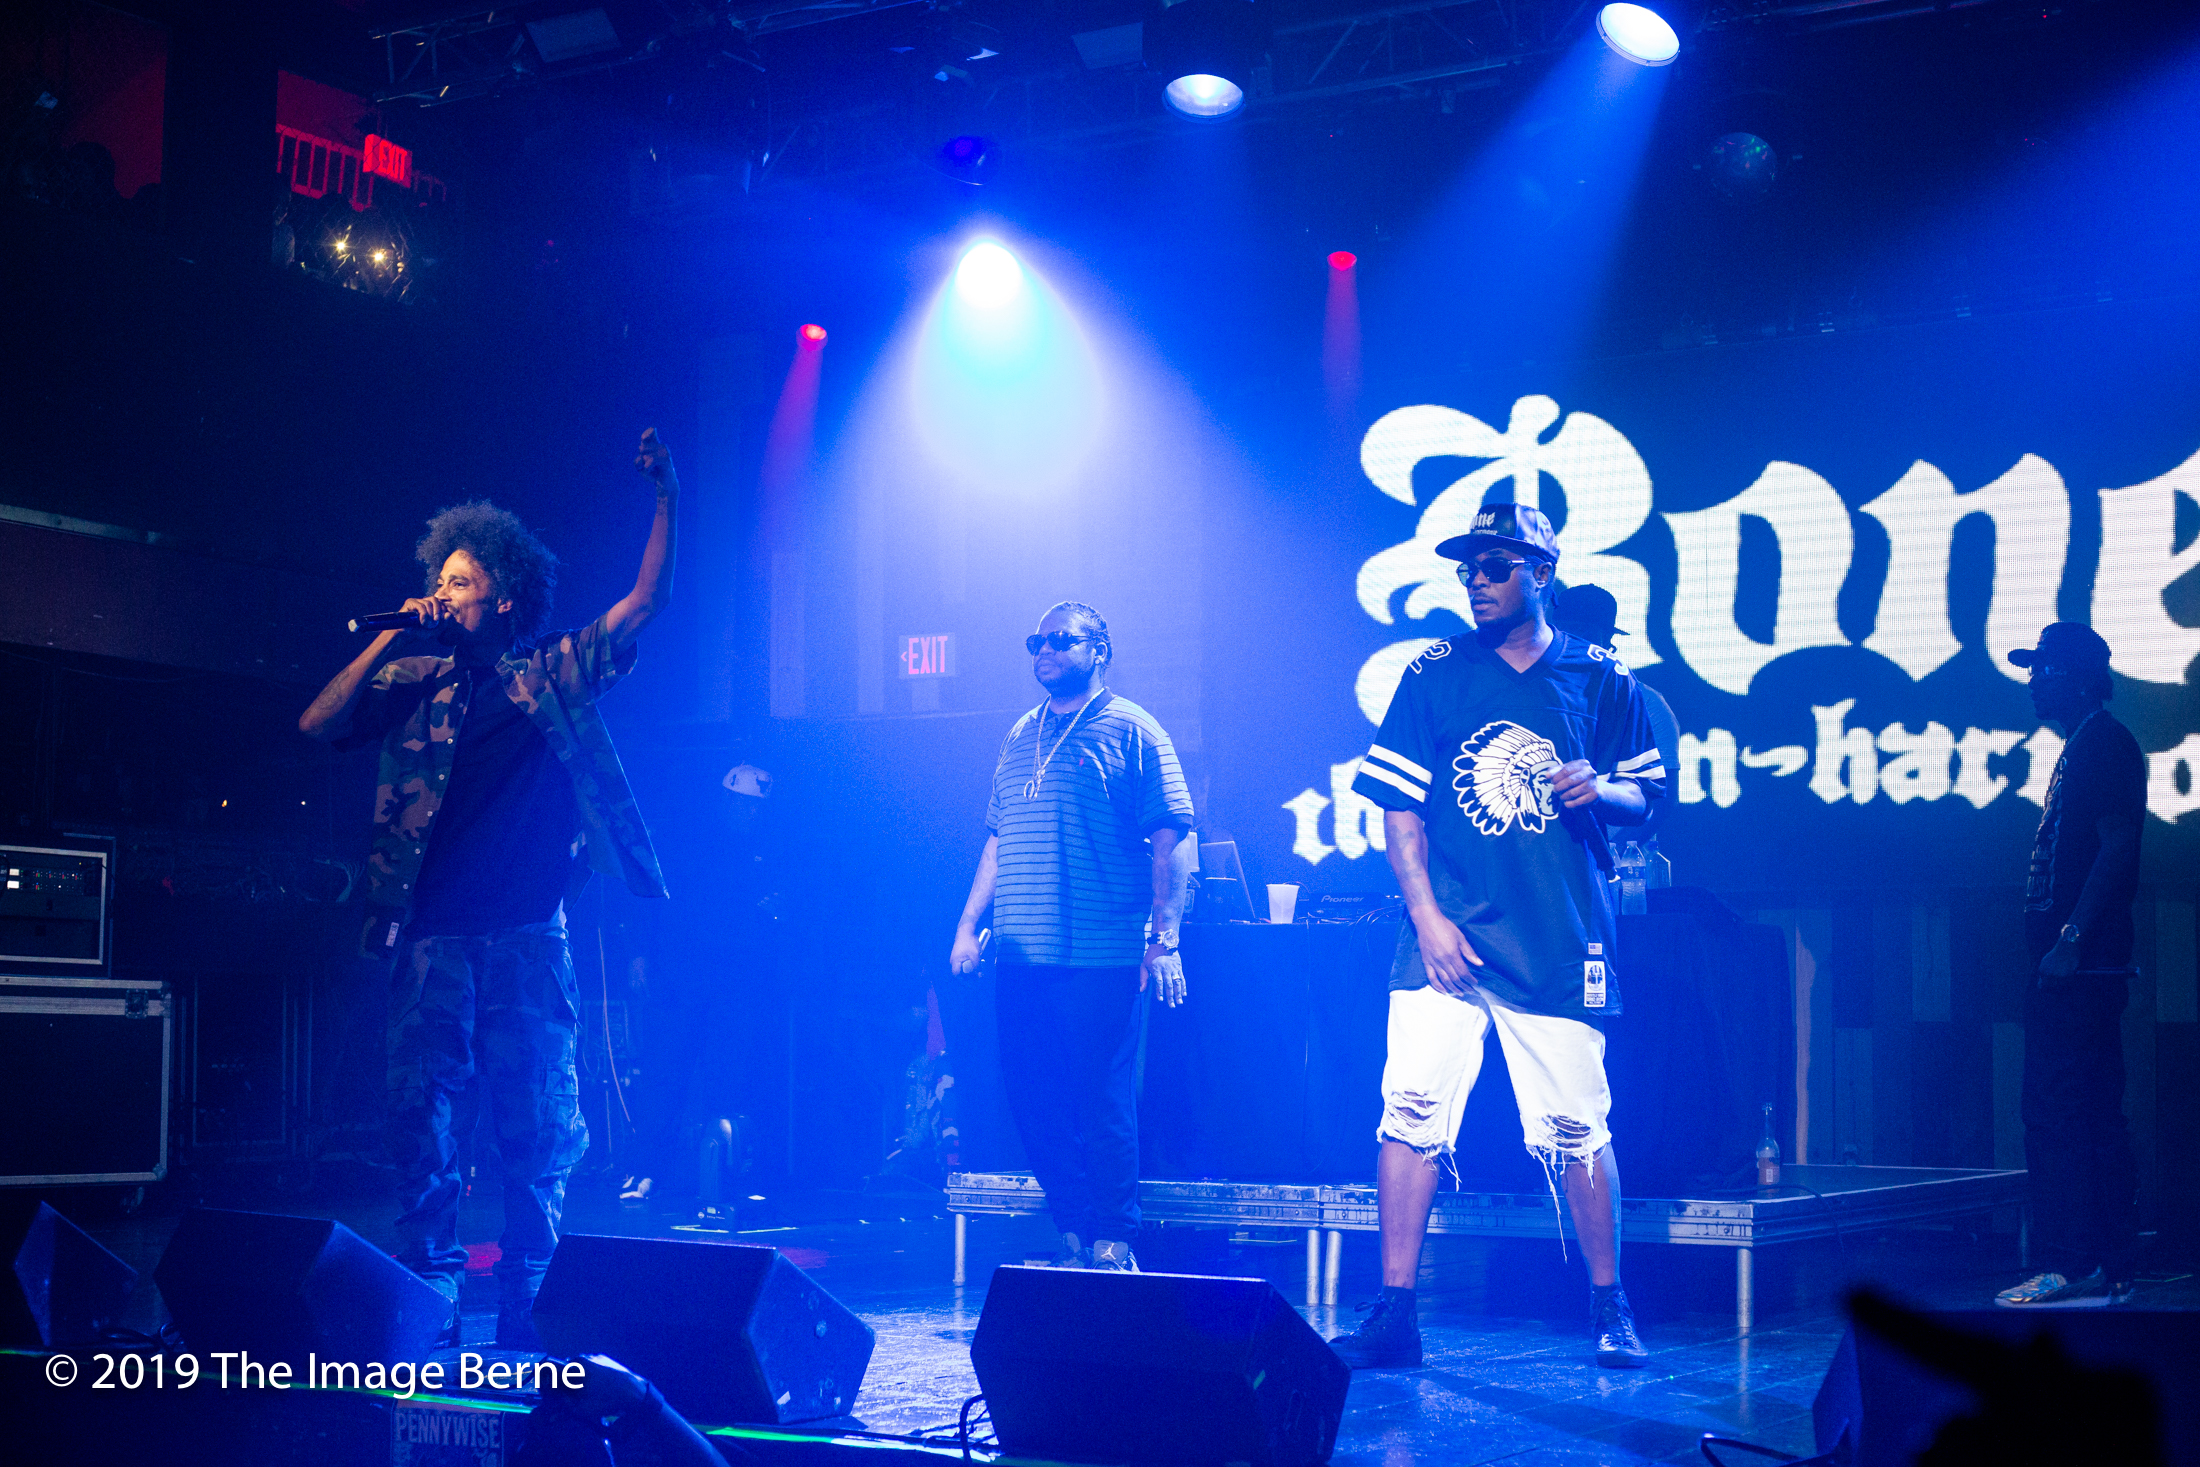 Krayzie Bone, Wish Bone, Flesh-N-Bone, Layzie Bone, and Bizzy Bone-094.jpg